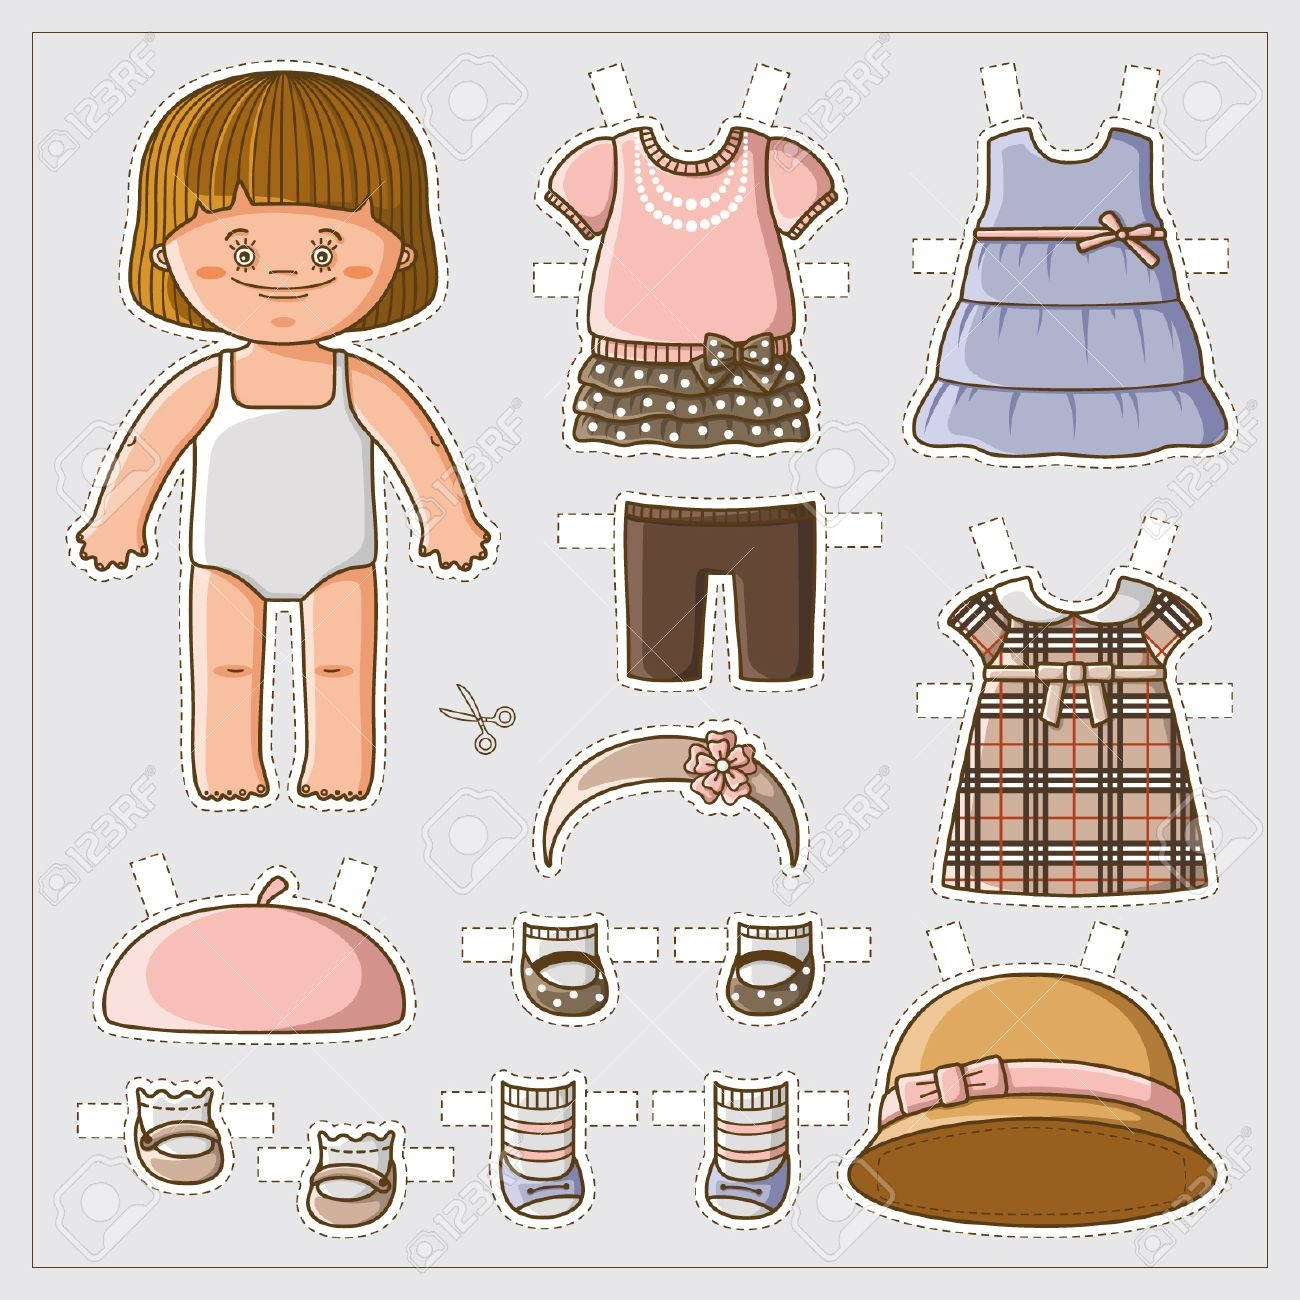 Dress Up Cute Paper Doll With Body Template Royalty Free Cliparts - Free Printable Dress Up Paper Dolls